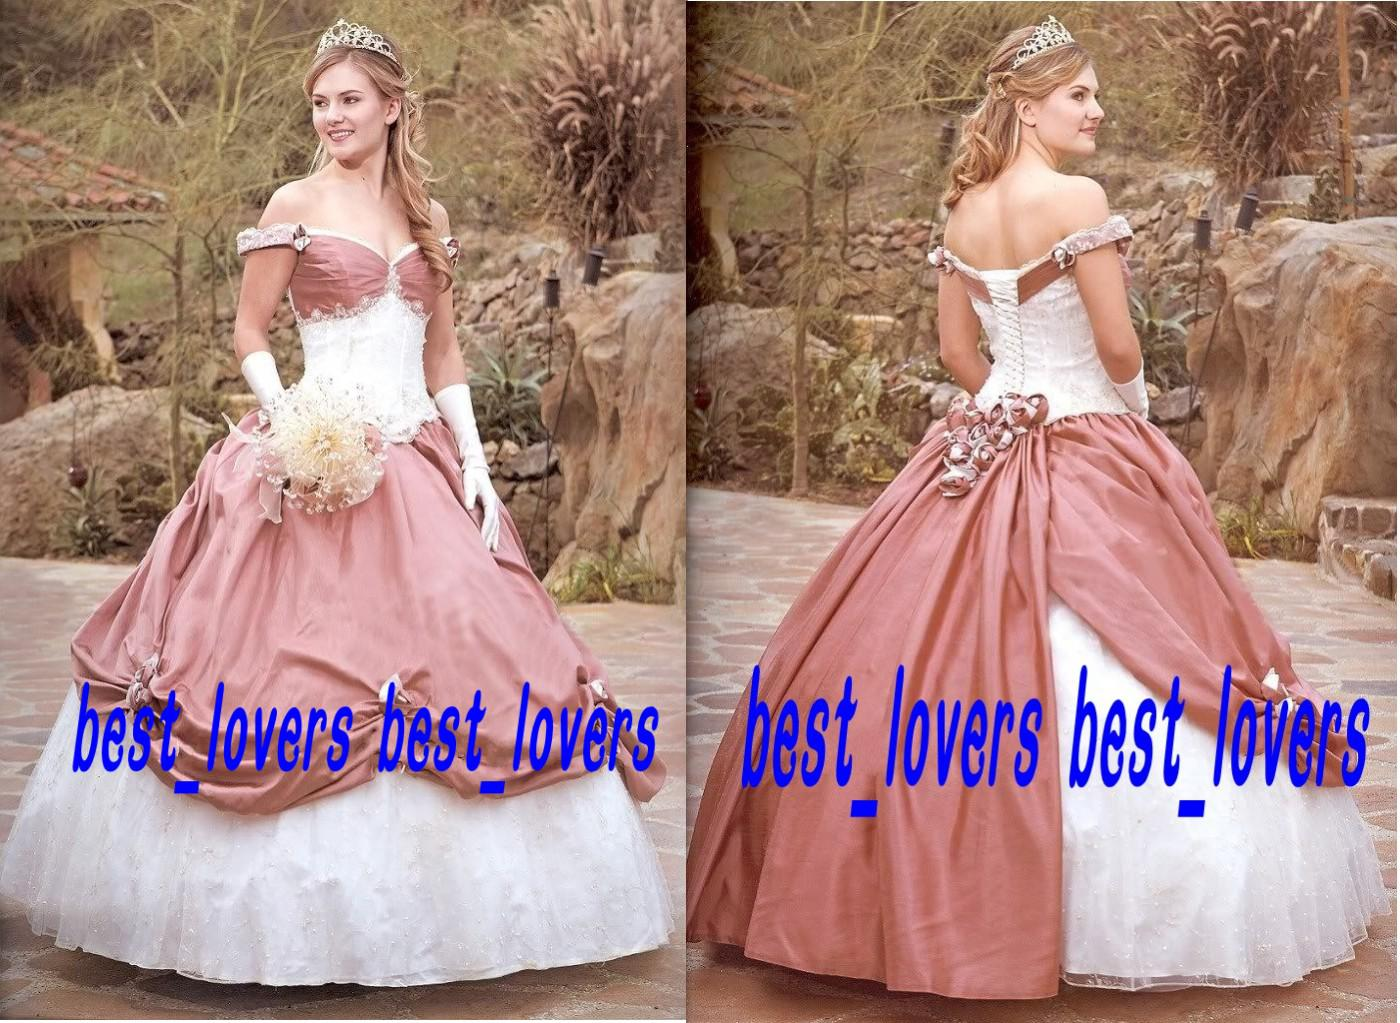 2014 Custom Made Victorian Ball Gown Wedding Dresses Princess Style ...